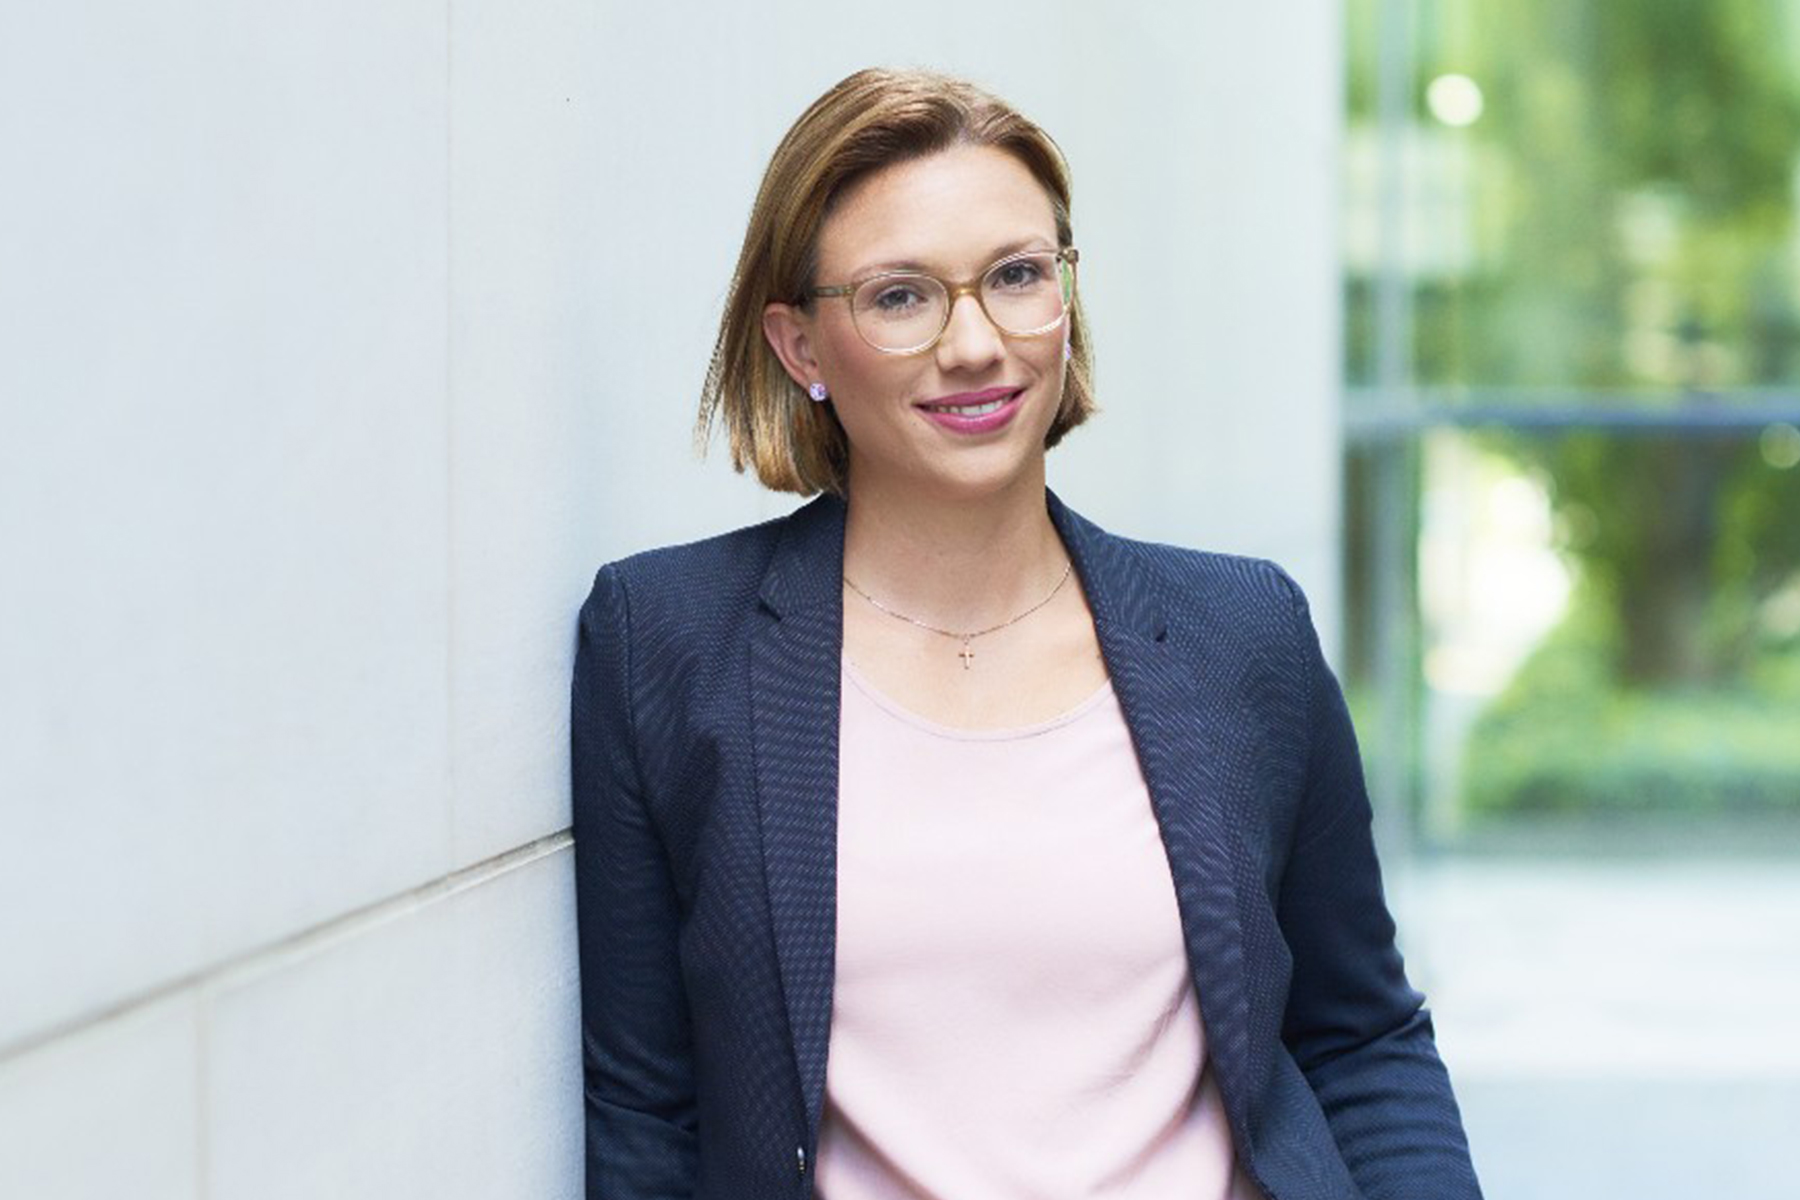 Franziska Blum – Senior Consultant, Financial Services Audit